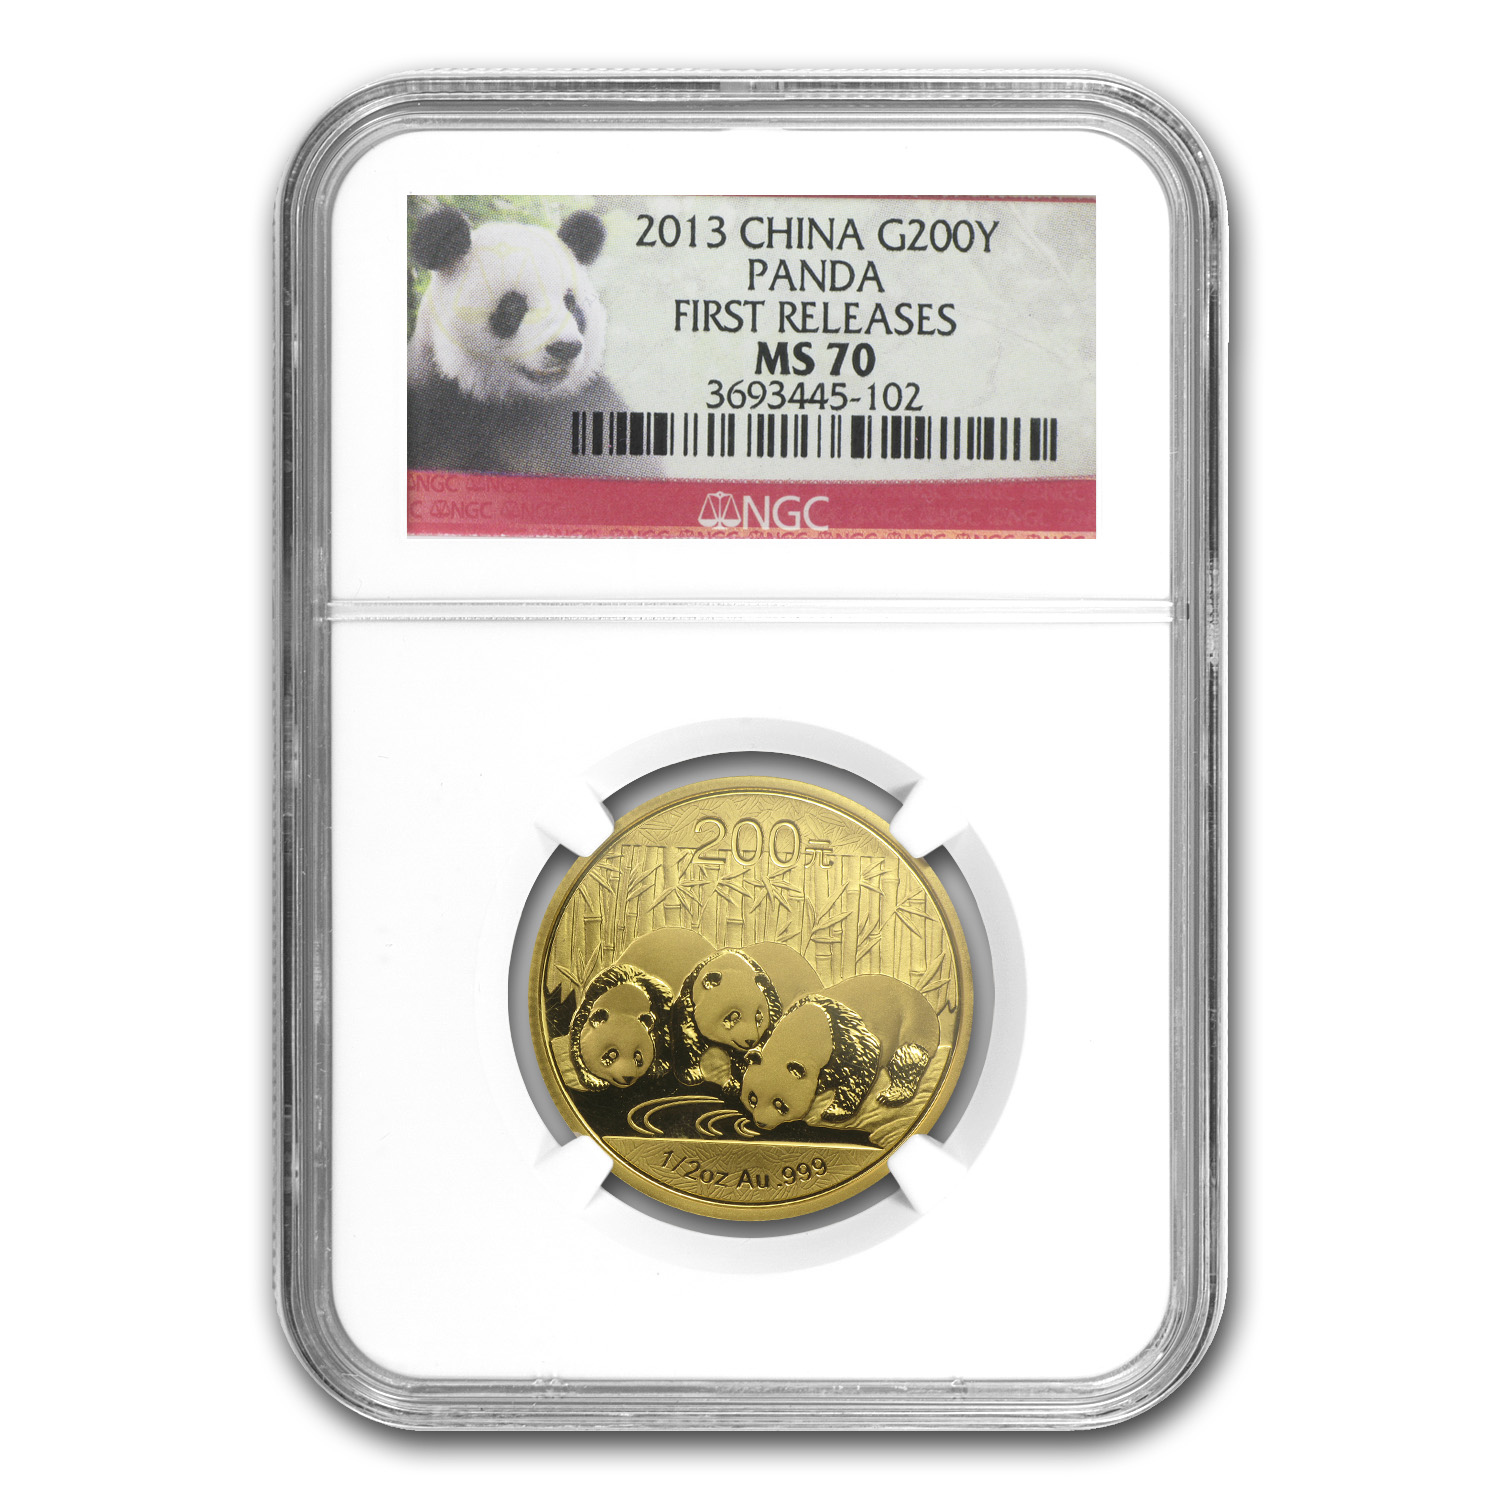 2013 (1/2 oz) Gold Chinese Panda - MS-70 NGC (First Release)